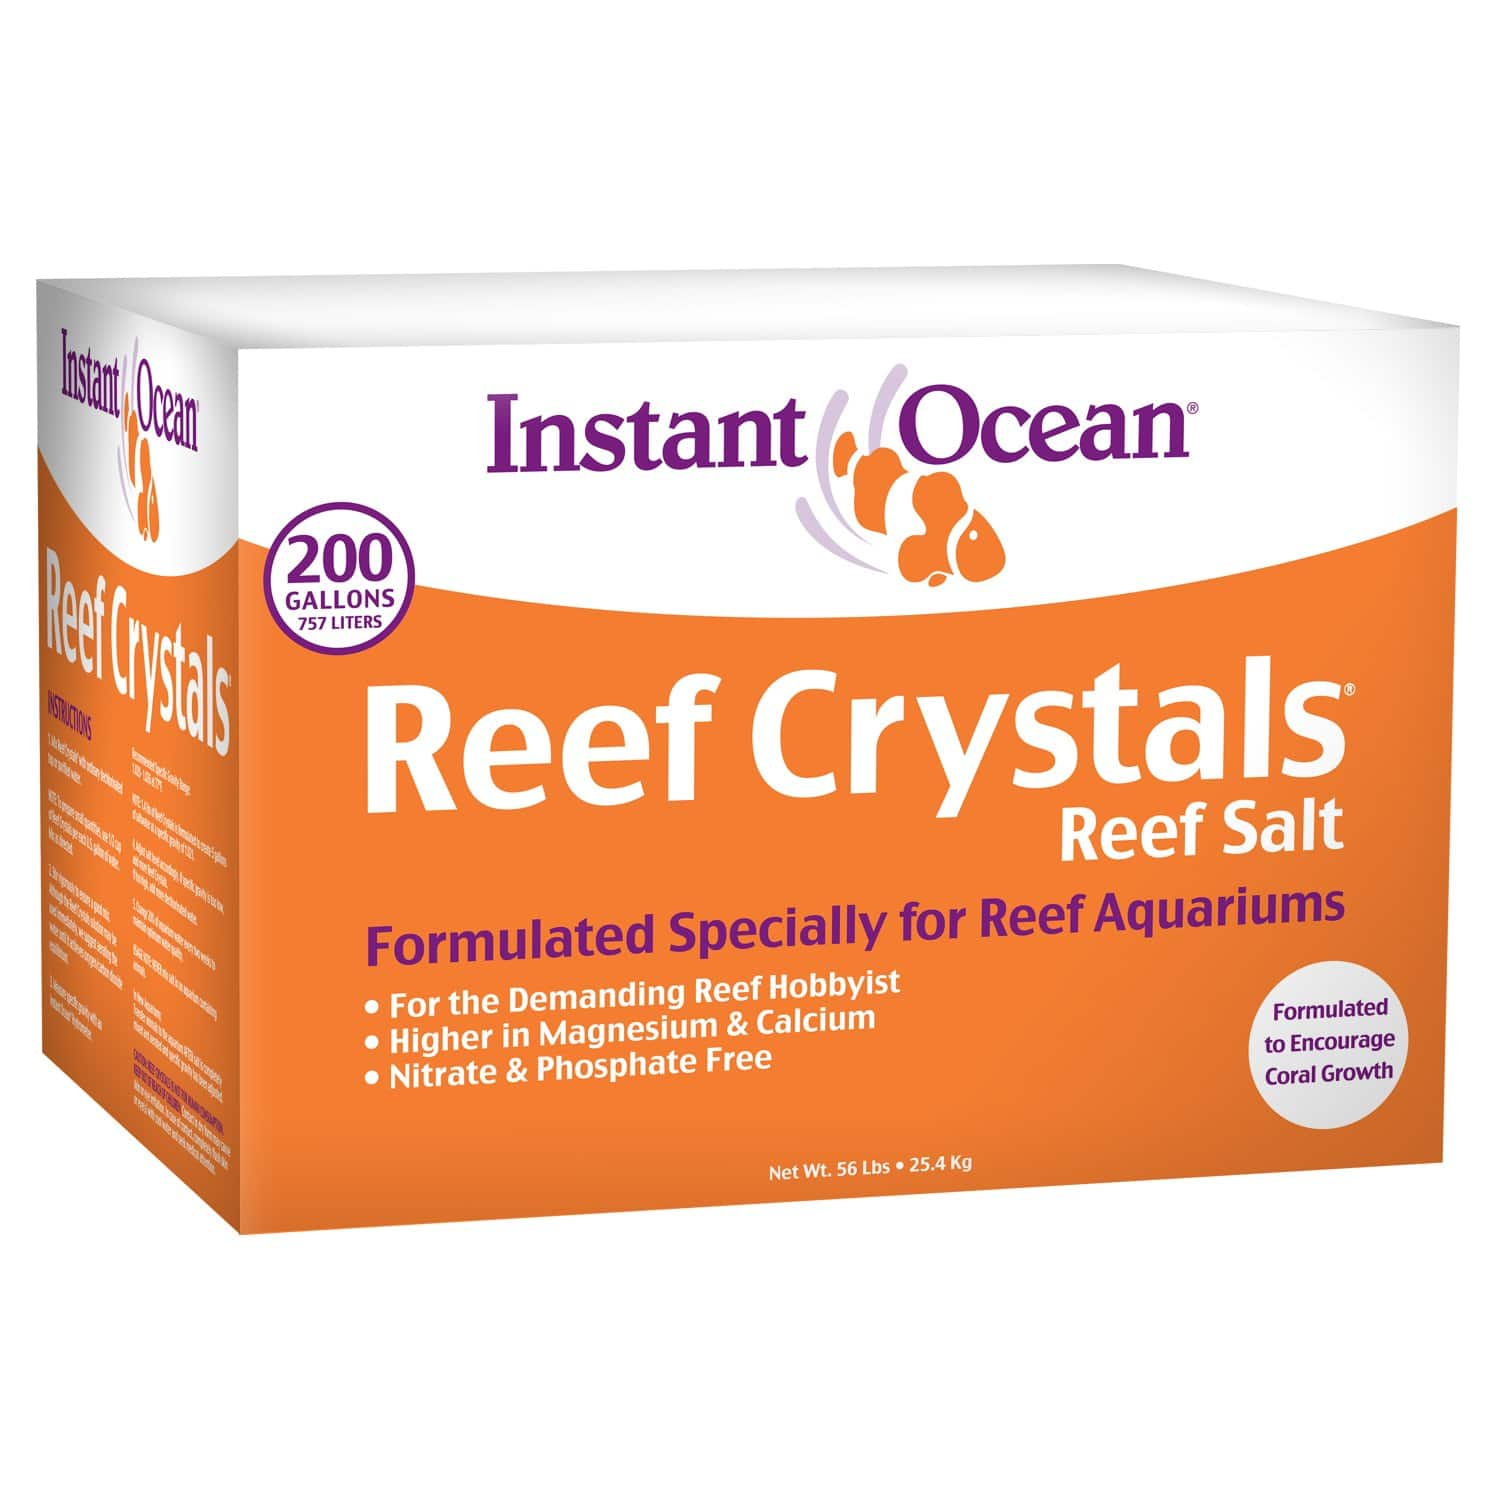 Instant Ocean Reef Crystals Reef Salt for Reef Aquariums, 200 Gallons  $33.17 w/S&S @ Amazon